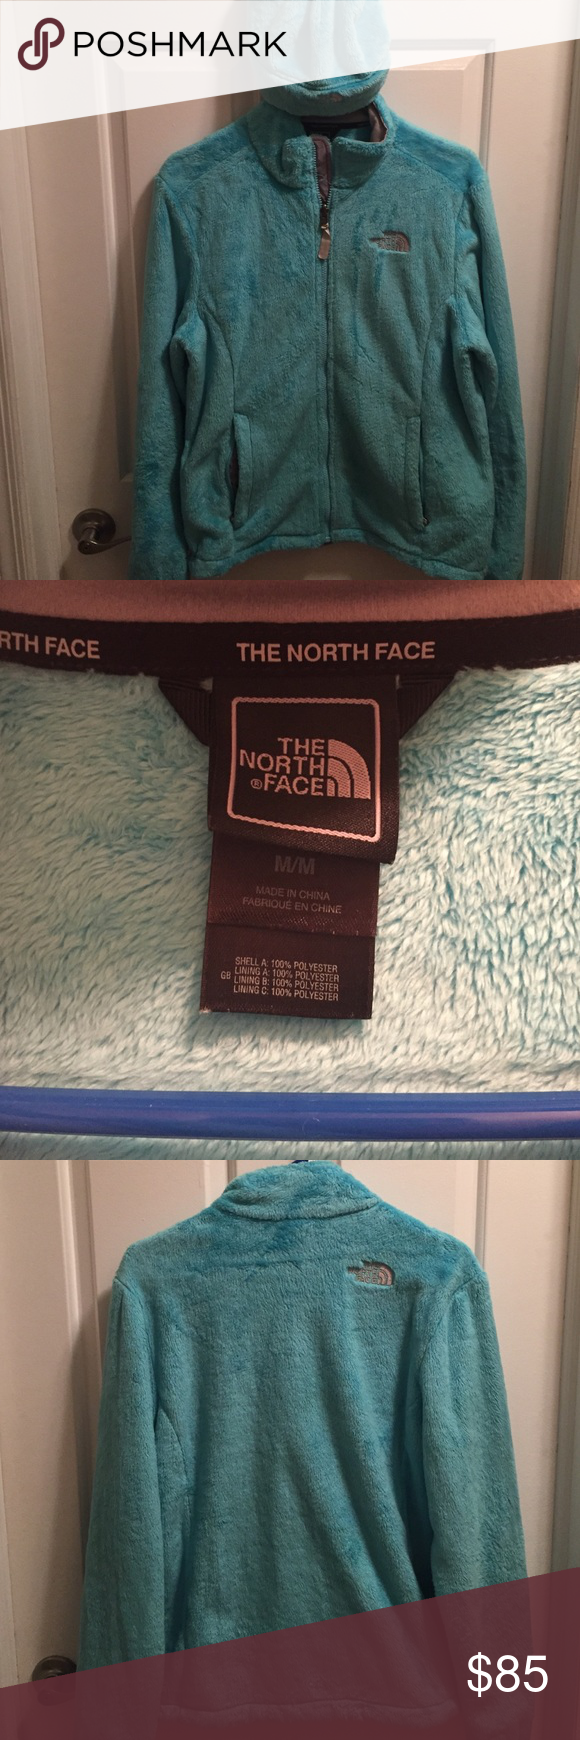 The North Face Fuzzy Blue Jacket The North Face fuzzy blue jacket and matching hat! Wore the jacket one time, never wore the hat! No marks or tears or anything! Excellent condition! Size Medium jacket! North Face Jackets & Coats